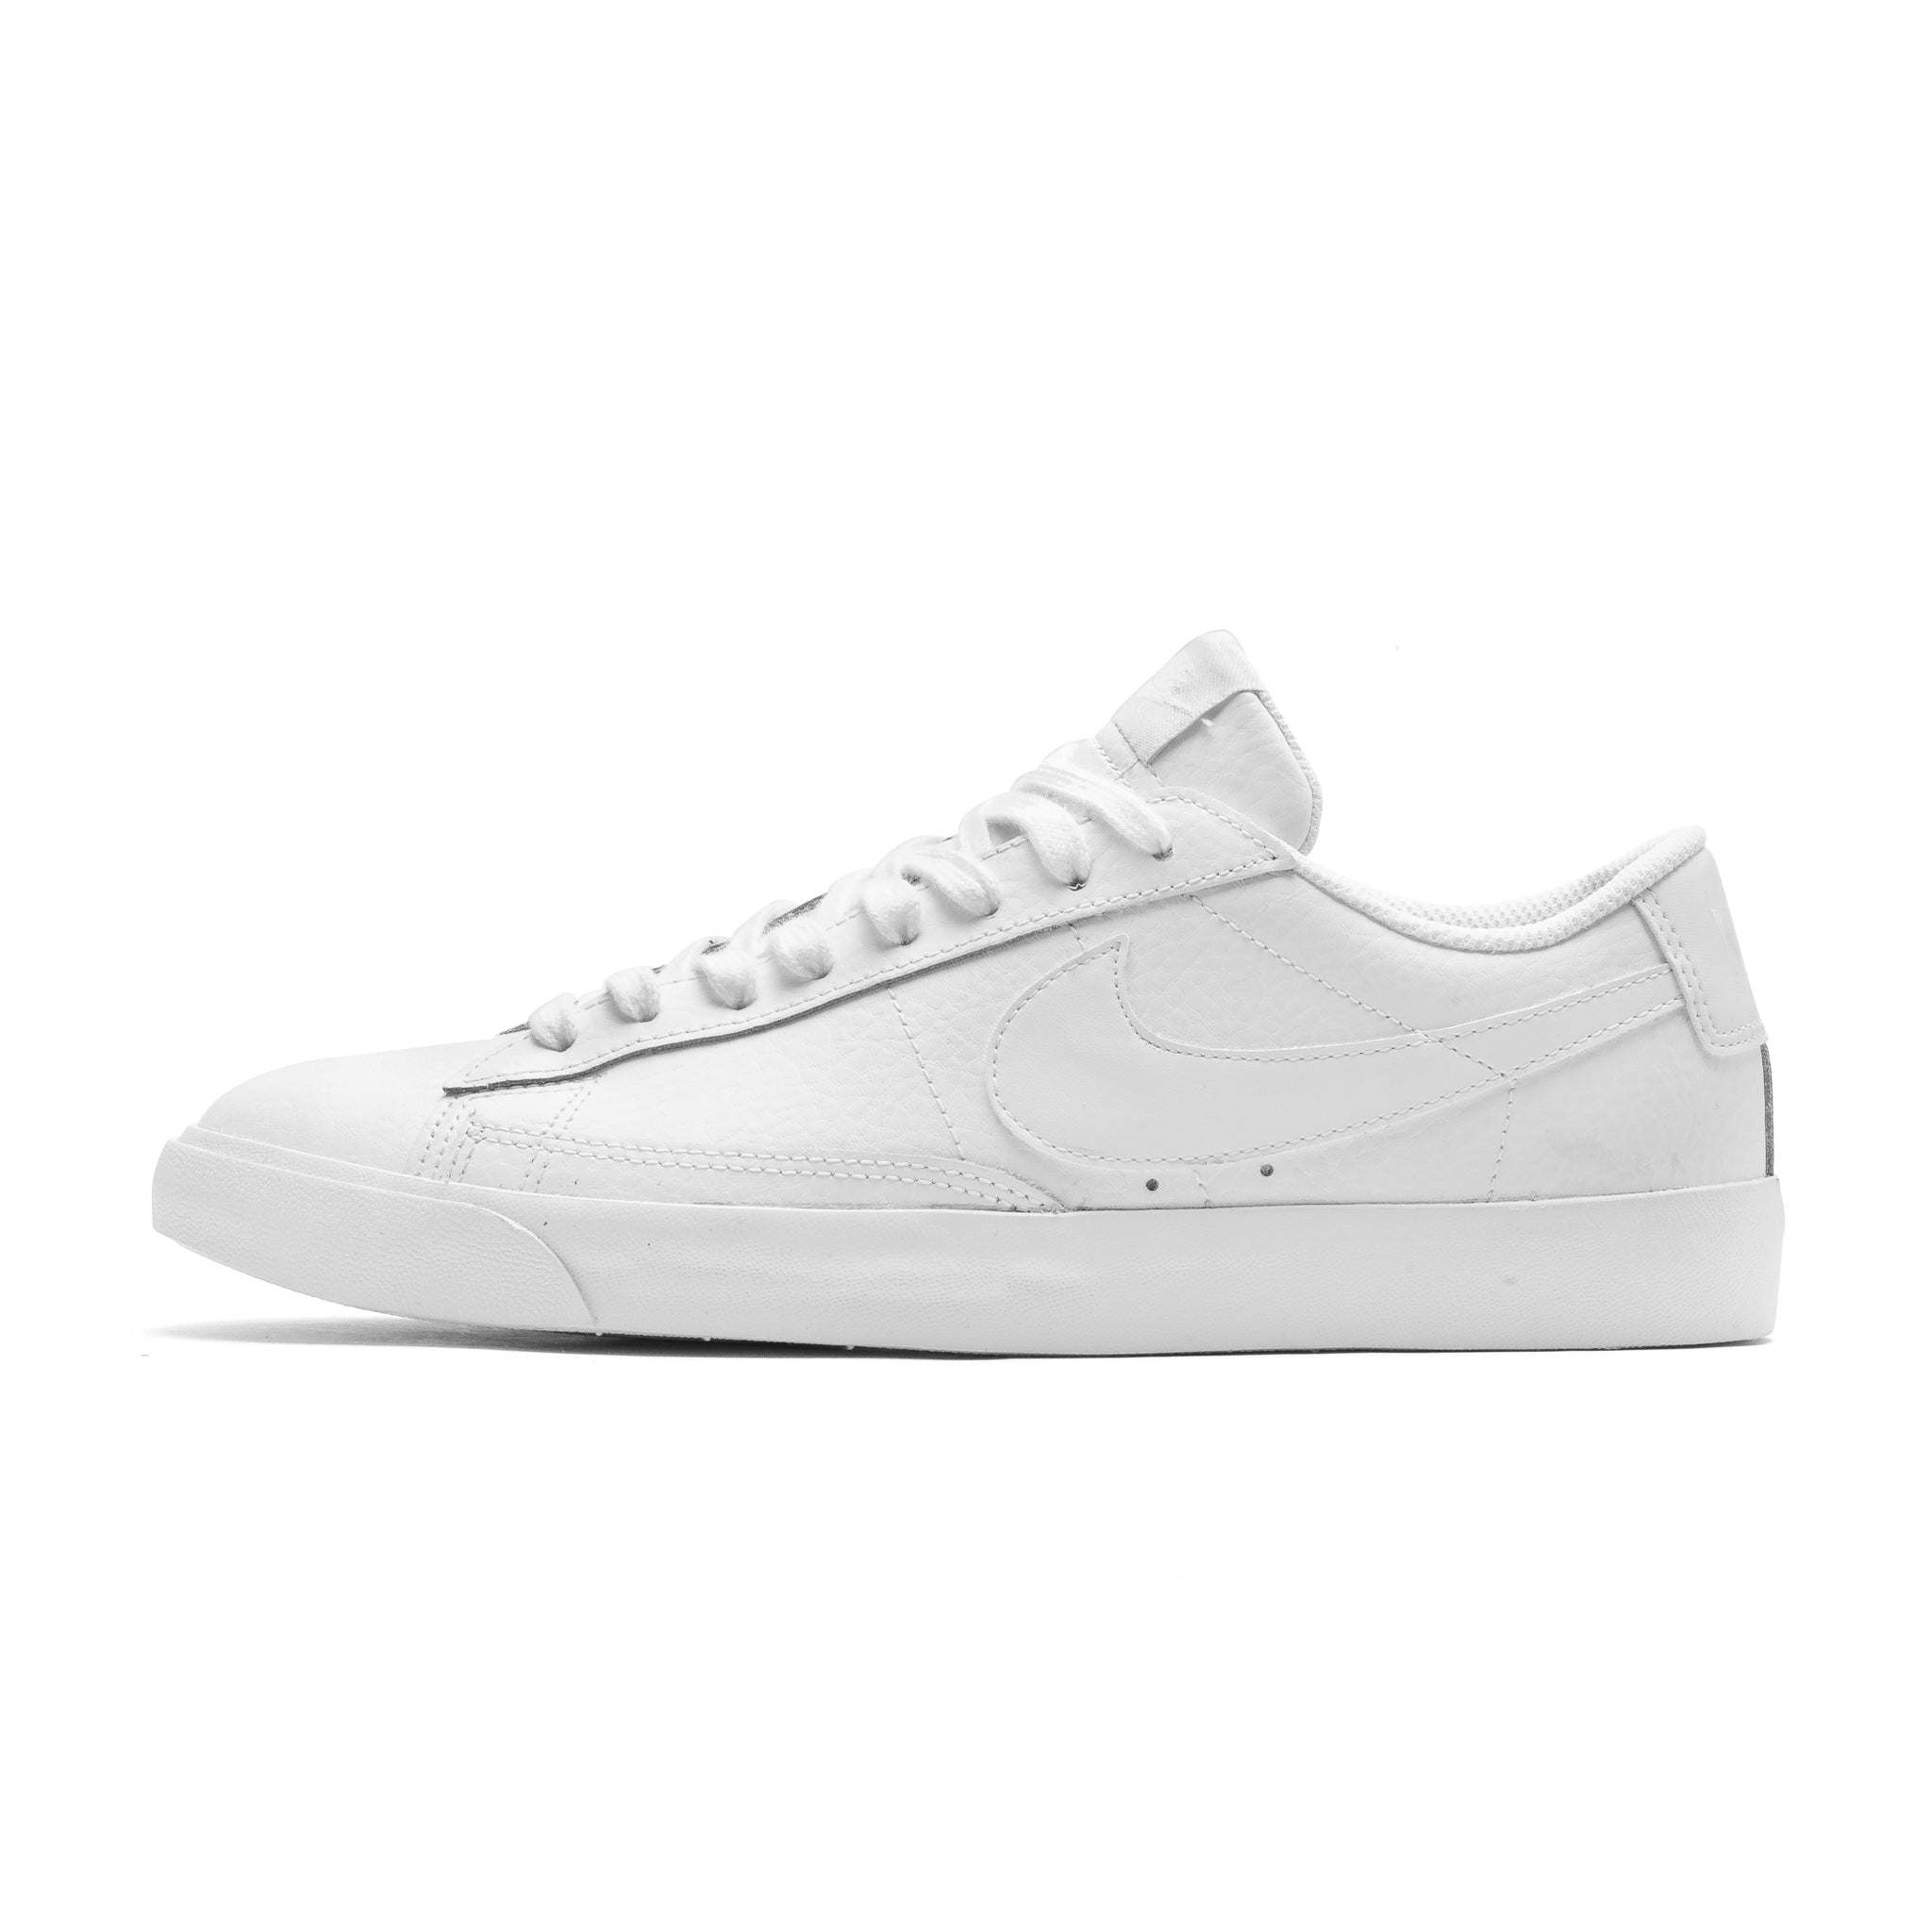 Nike Blazer Low LE AQ3597-100 White